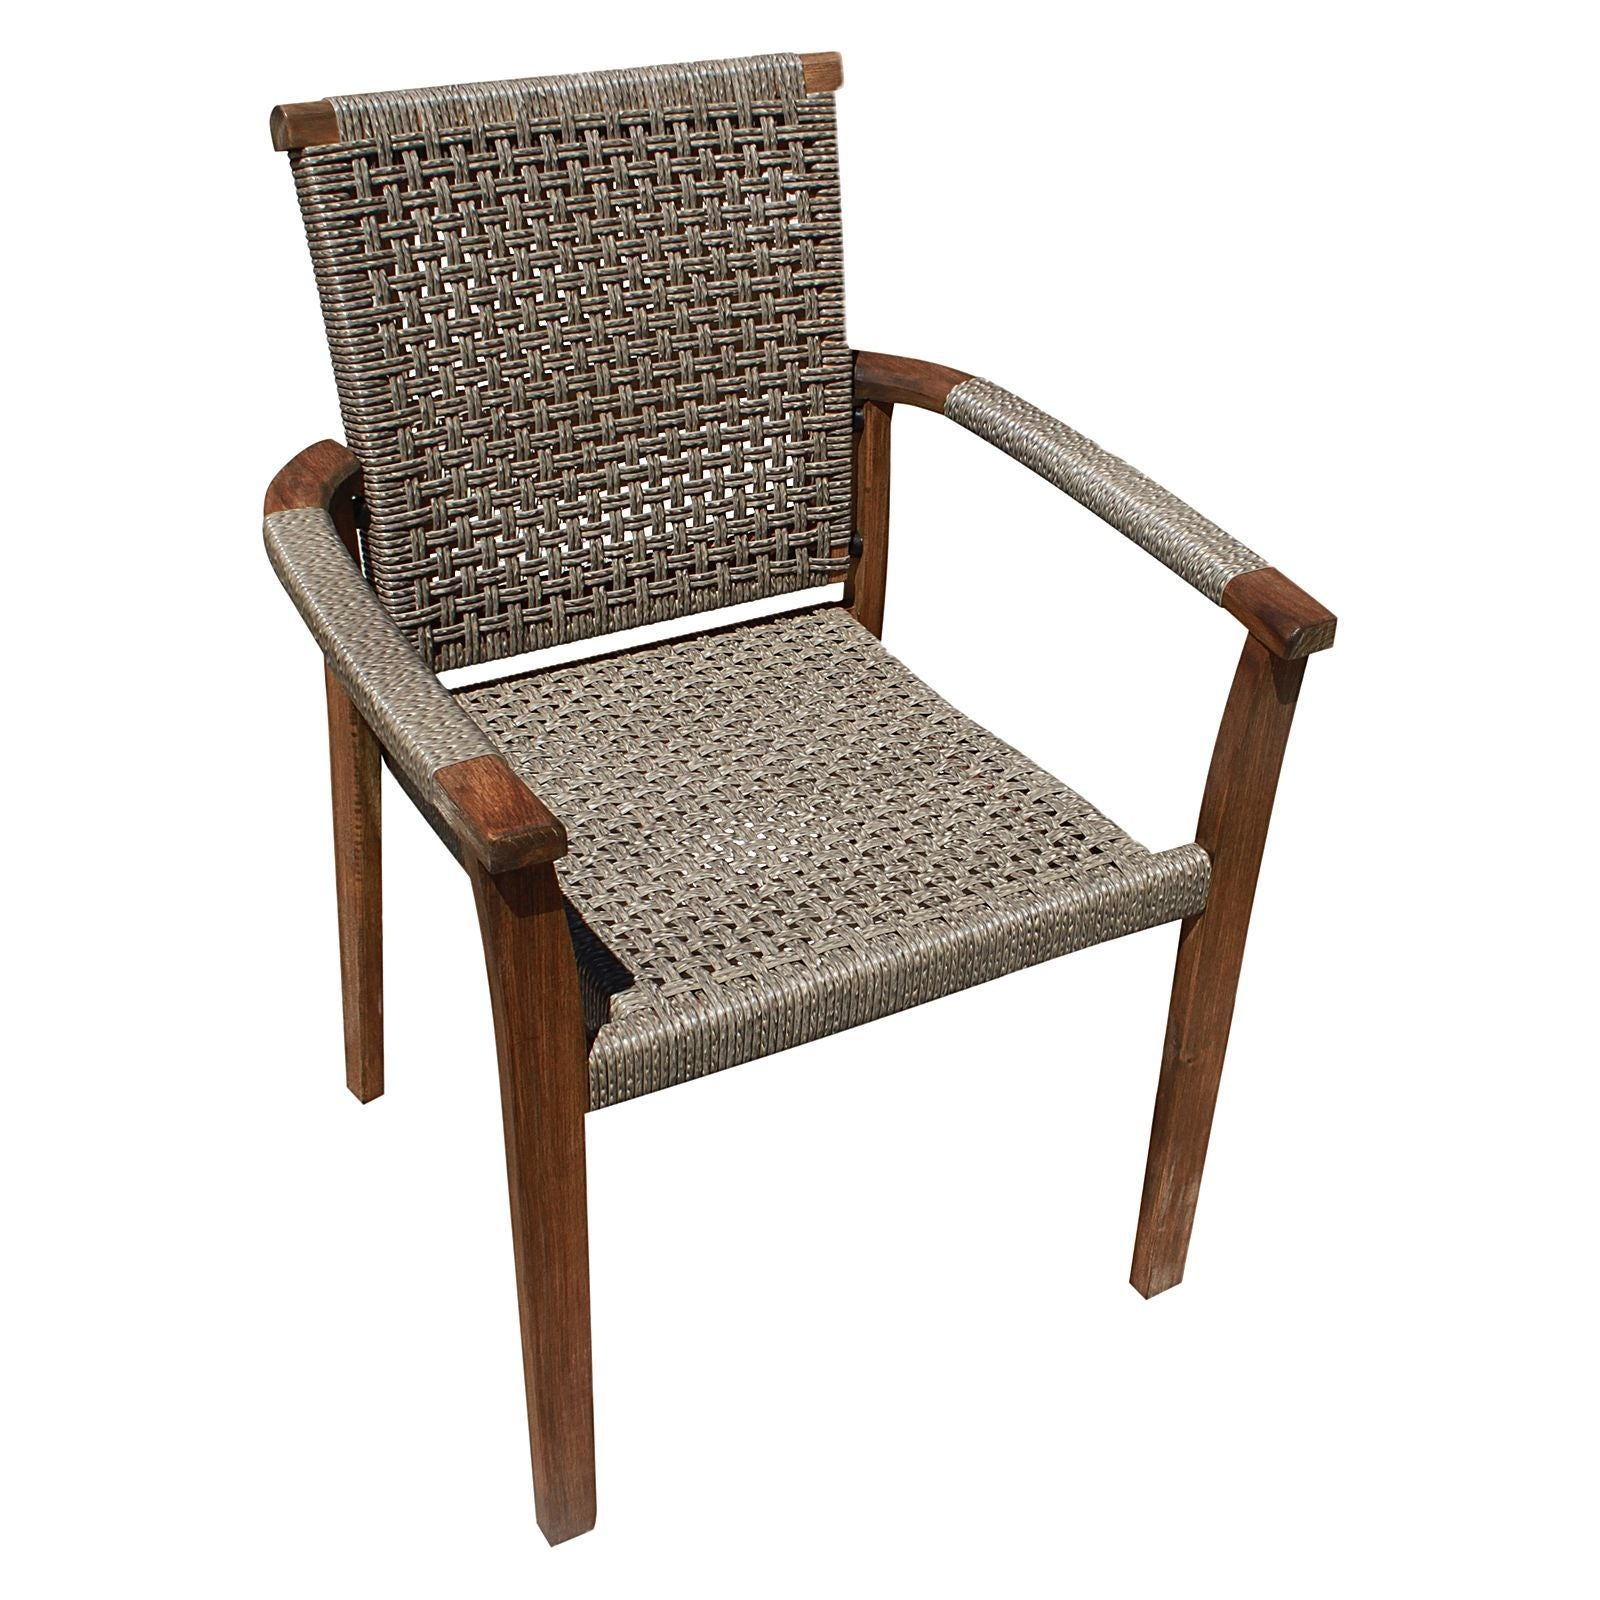 Maldives Outdoor Armchair - Outdoor Living Essentials